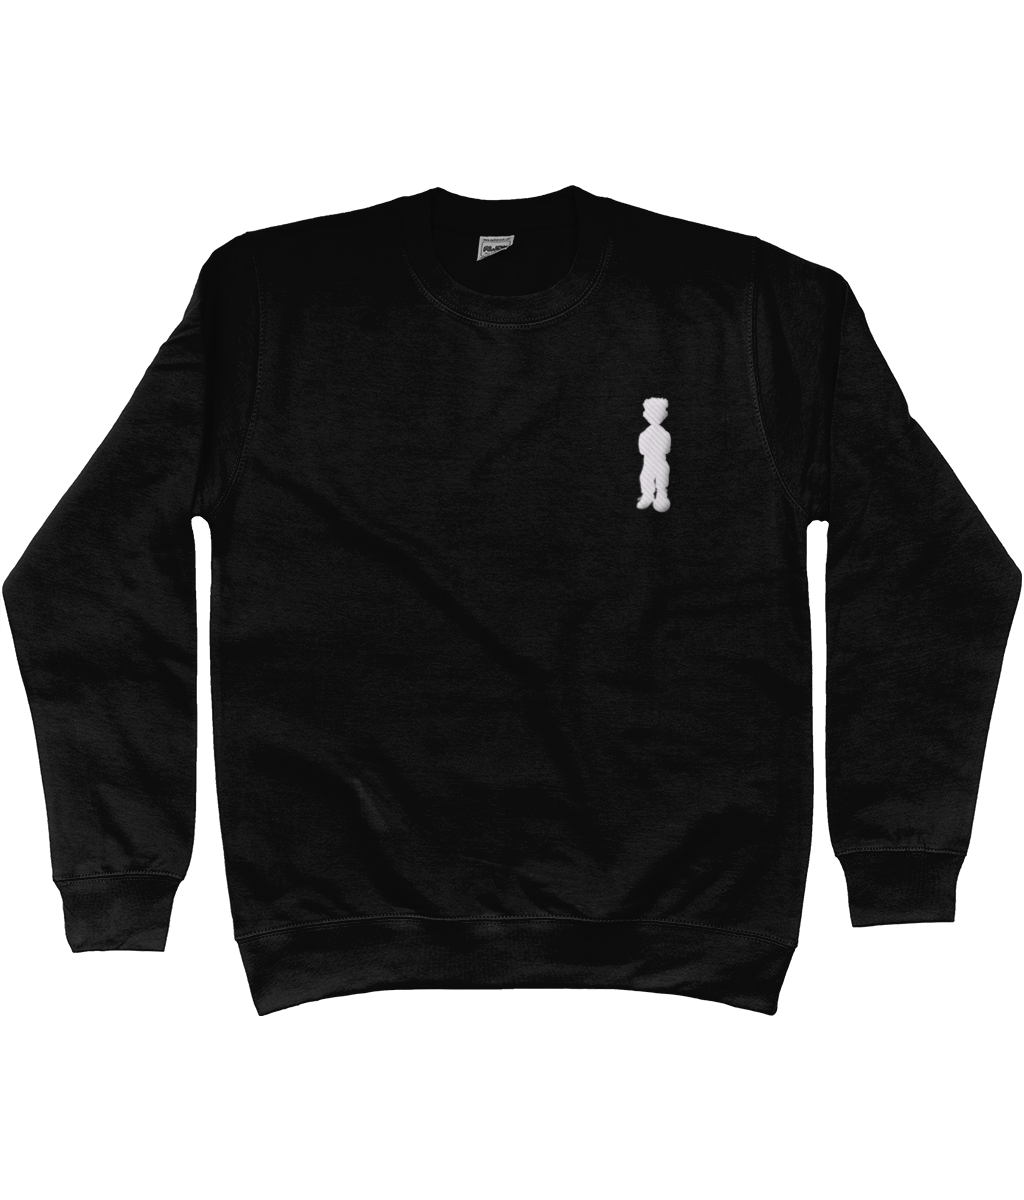 Rio Uniform Jumper - Black